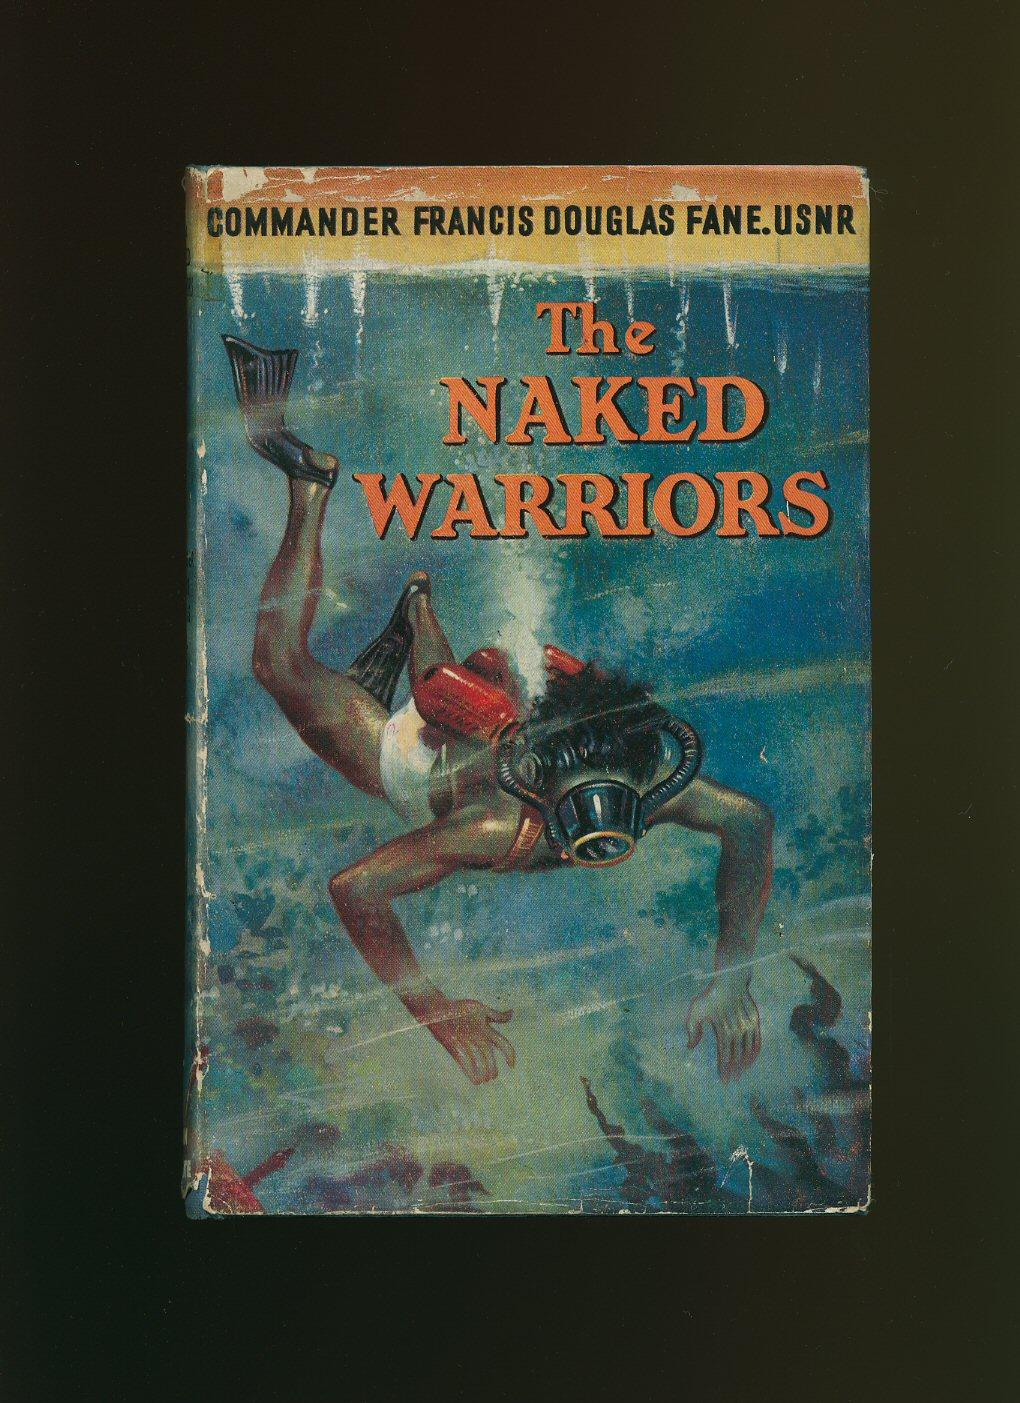 The Naked Warriors: Commander Francis Douglas Fane, U. S. N. R. and Don Moore [Foreword by Ian ...